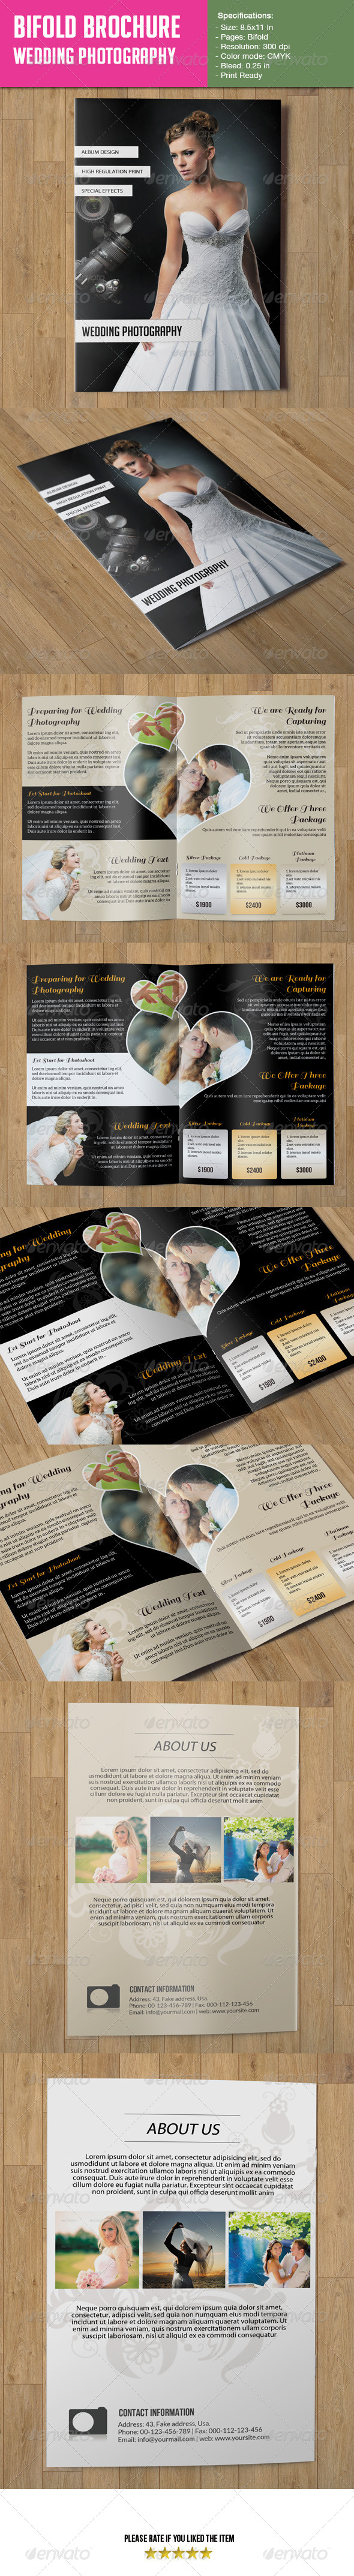 Bifold Brochure- Wedding Photography - Corporate Brochures